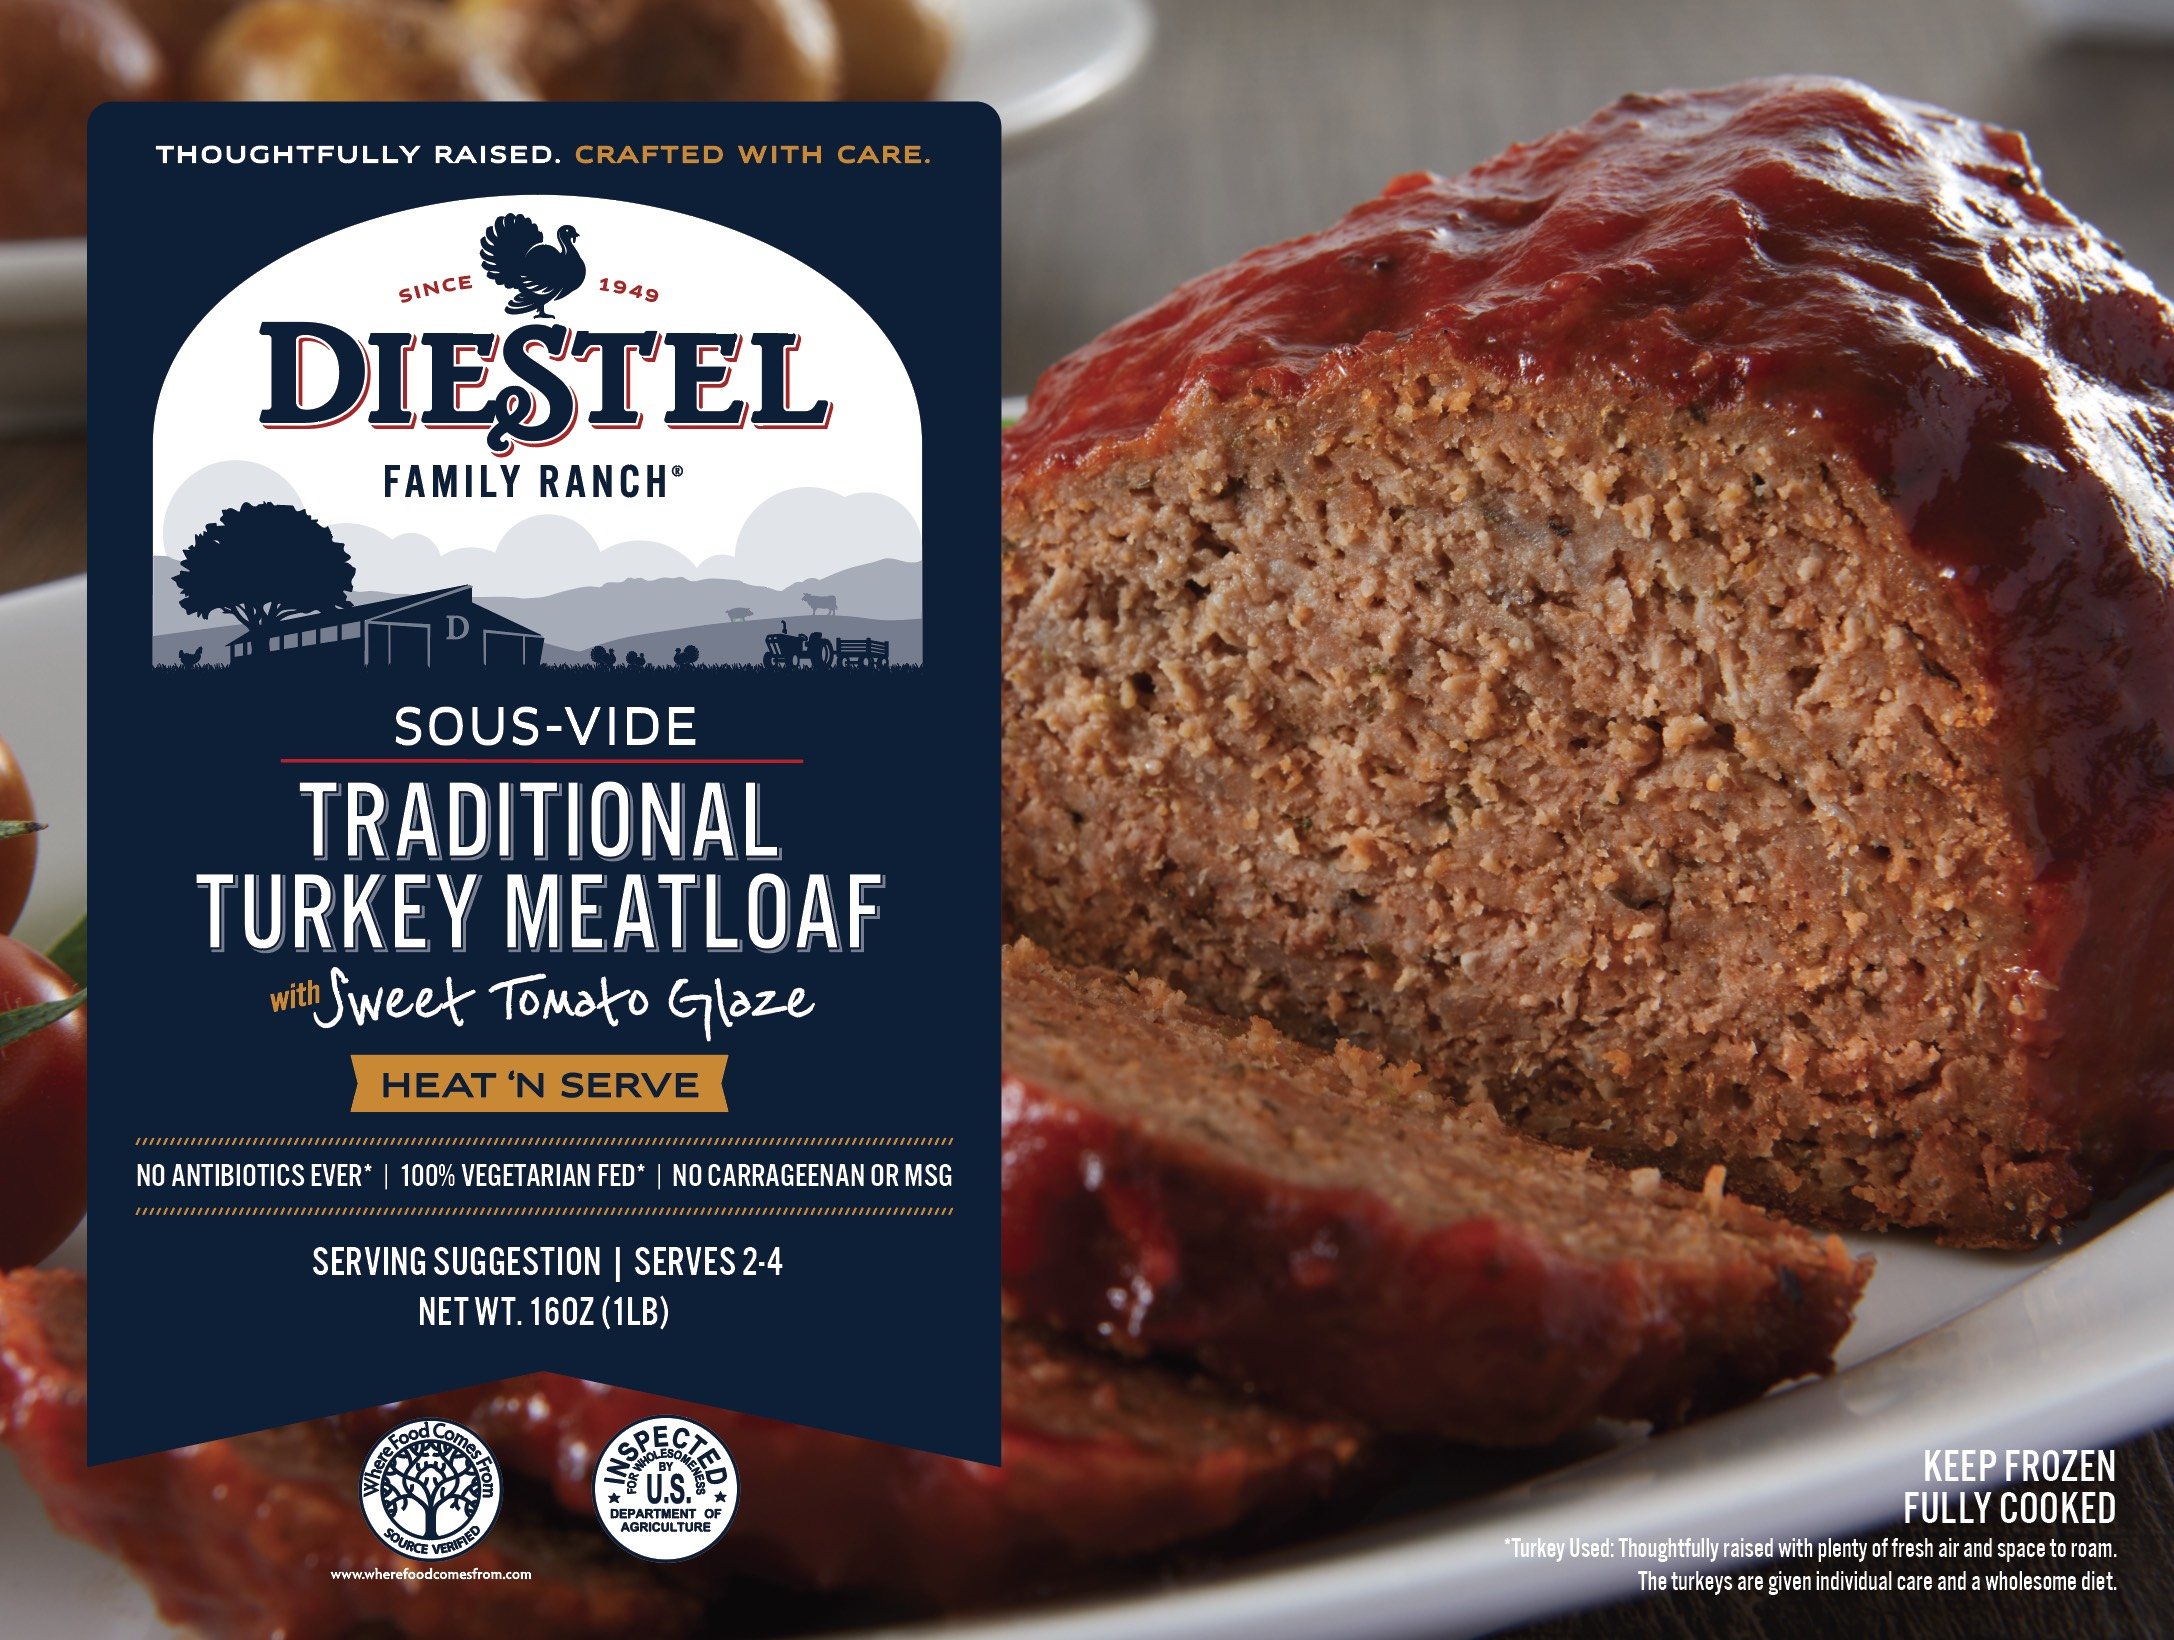 Traditional Sousvide Meatloaf Diestel Family Ranch